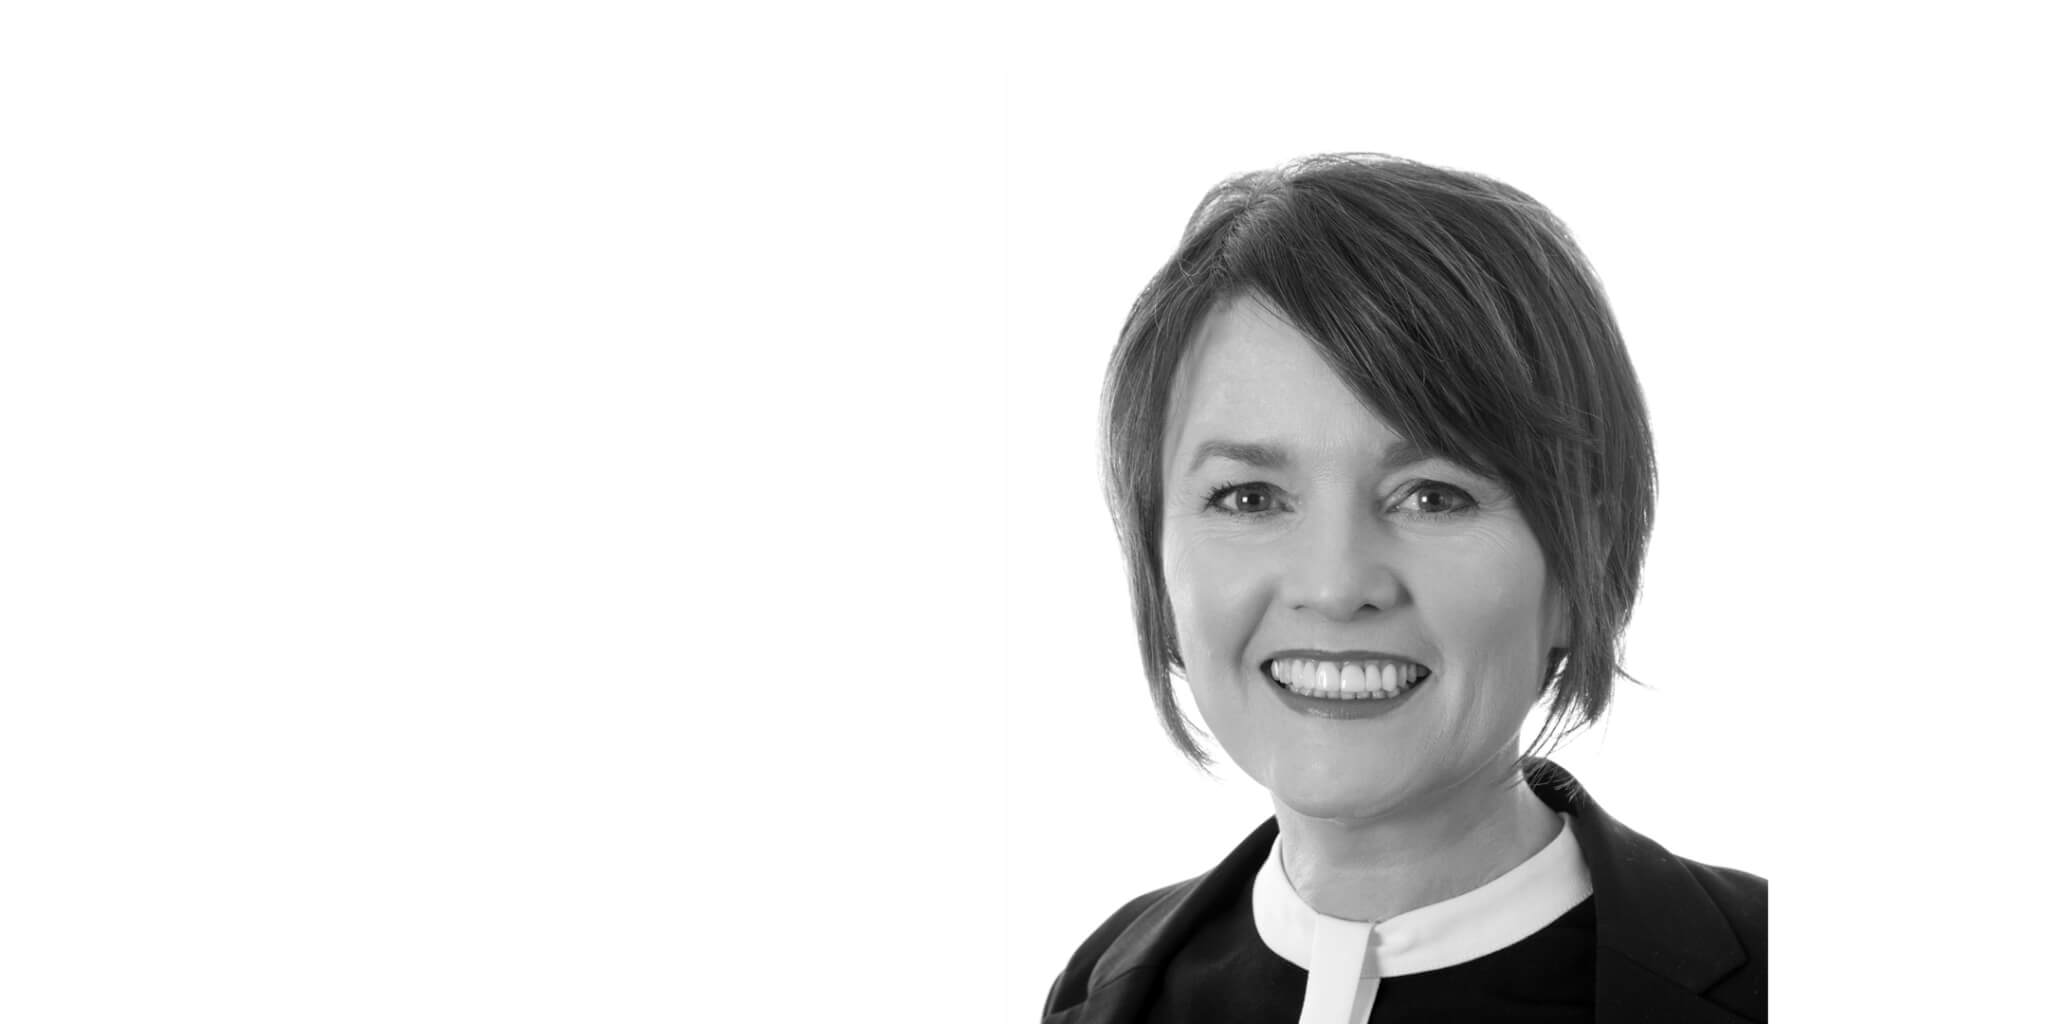 Colette McCormack named as one of 2018's most influential women in planning by The Planner